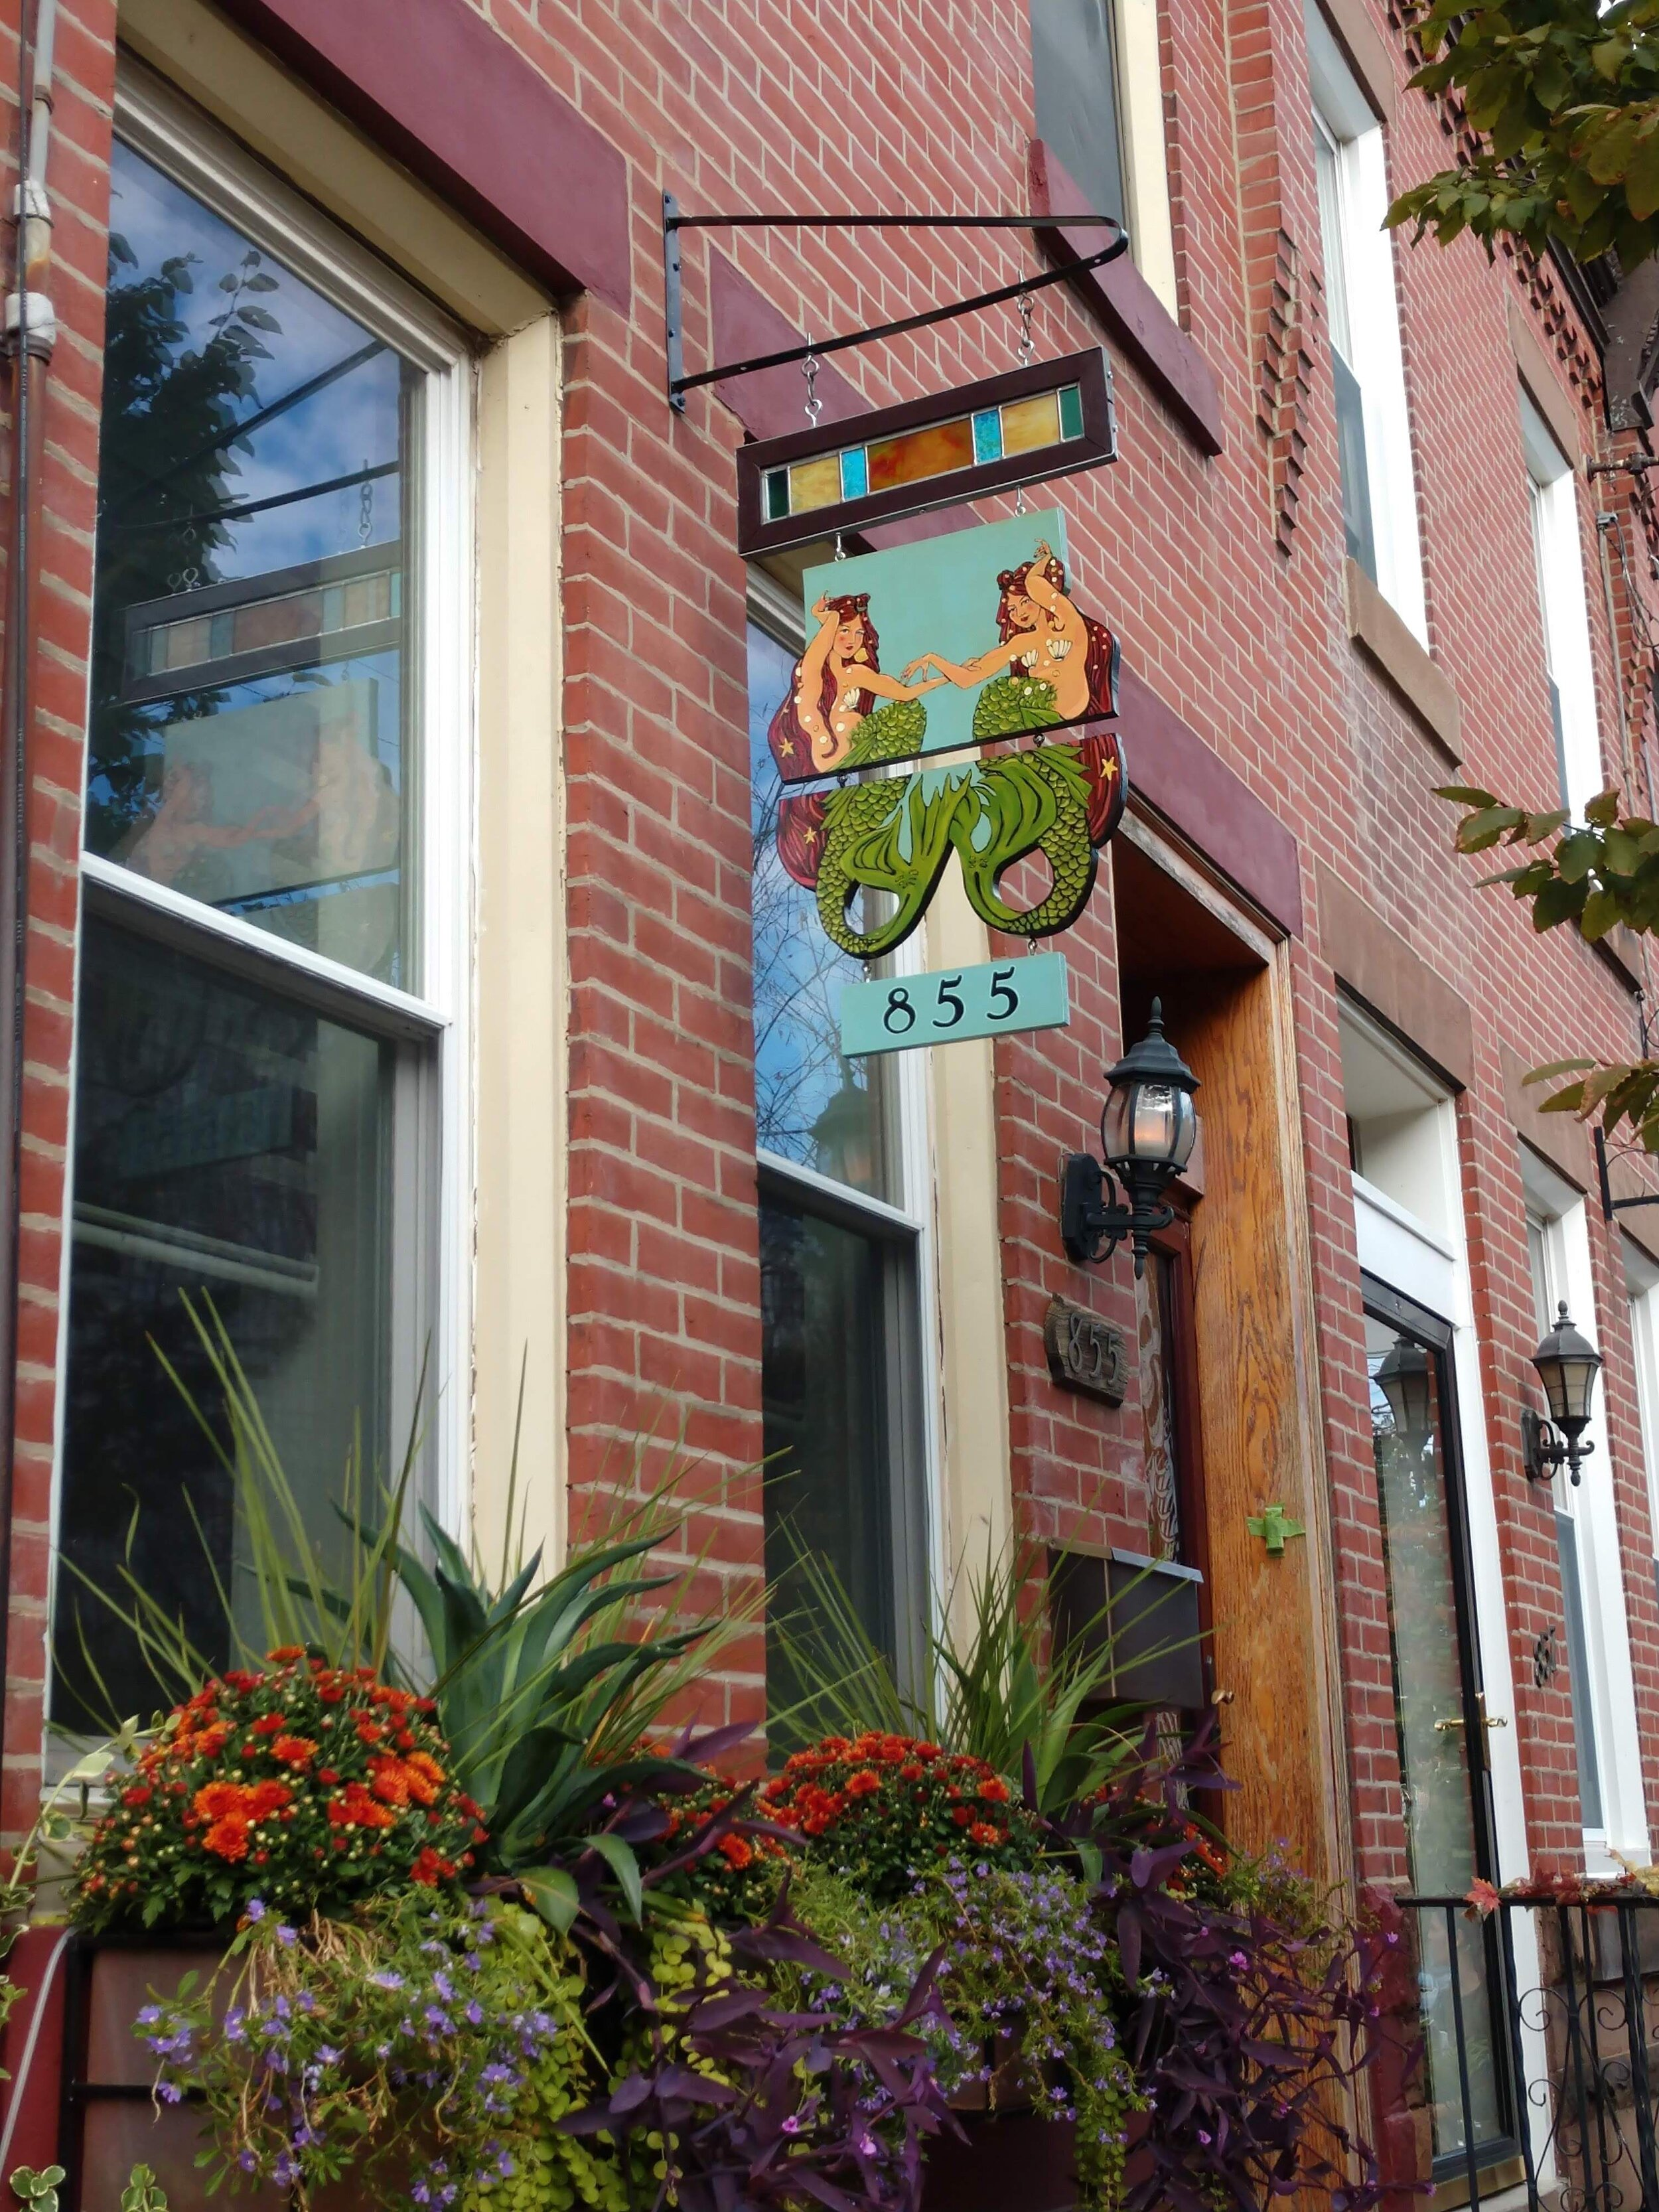 These mermaids are lucky to live above these beautiful window boxes!